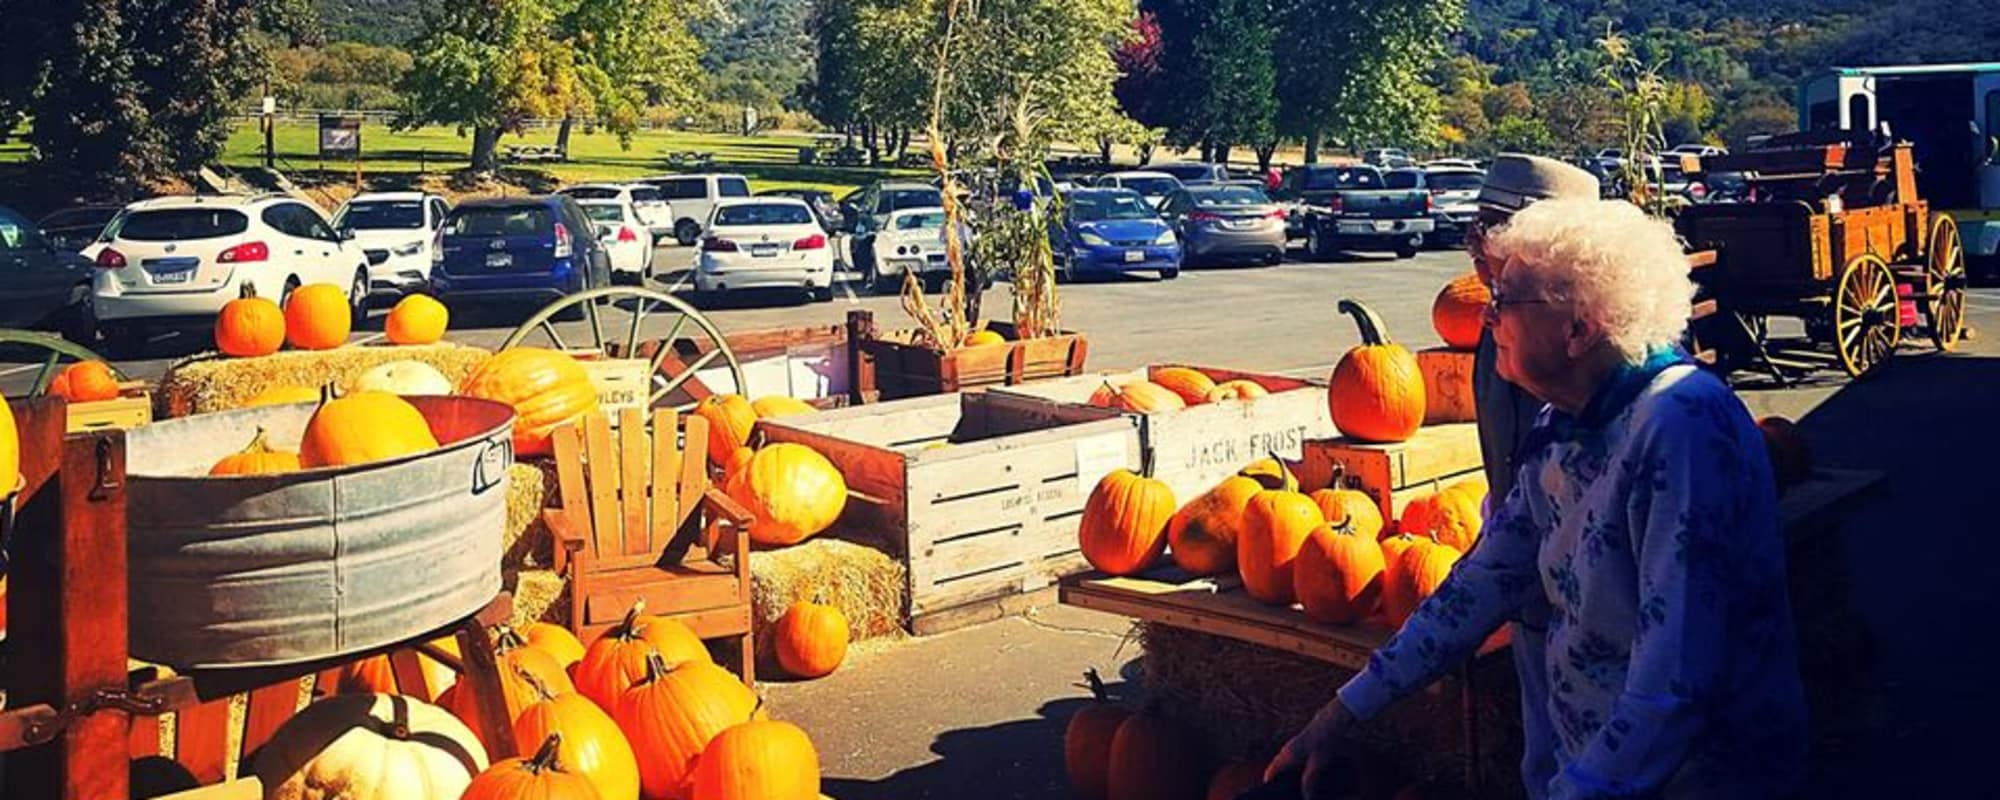 Senior gazing at Pumpkins at Dale Commons in Modesto, California